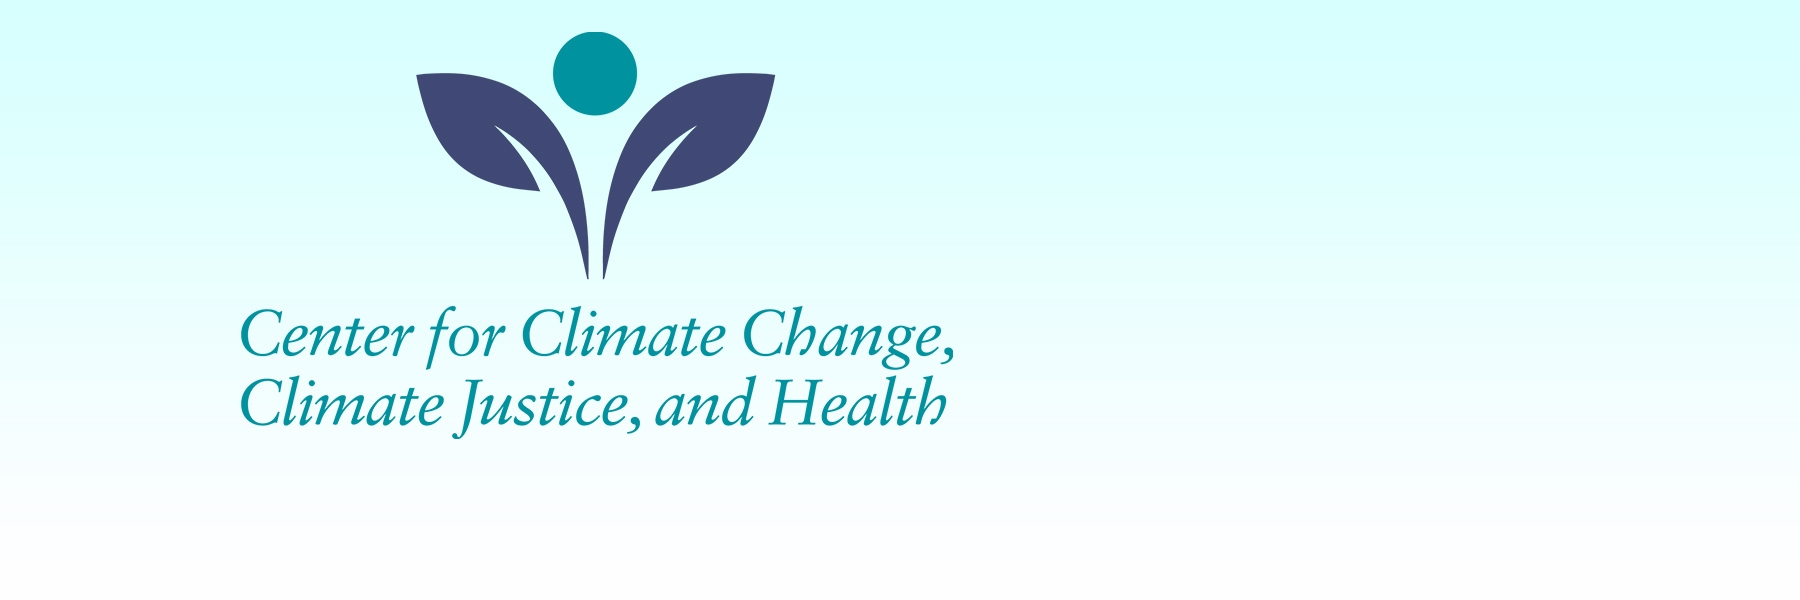 Icon is the logo of the Center for Climate Change, Climate Justice and Health